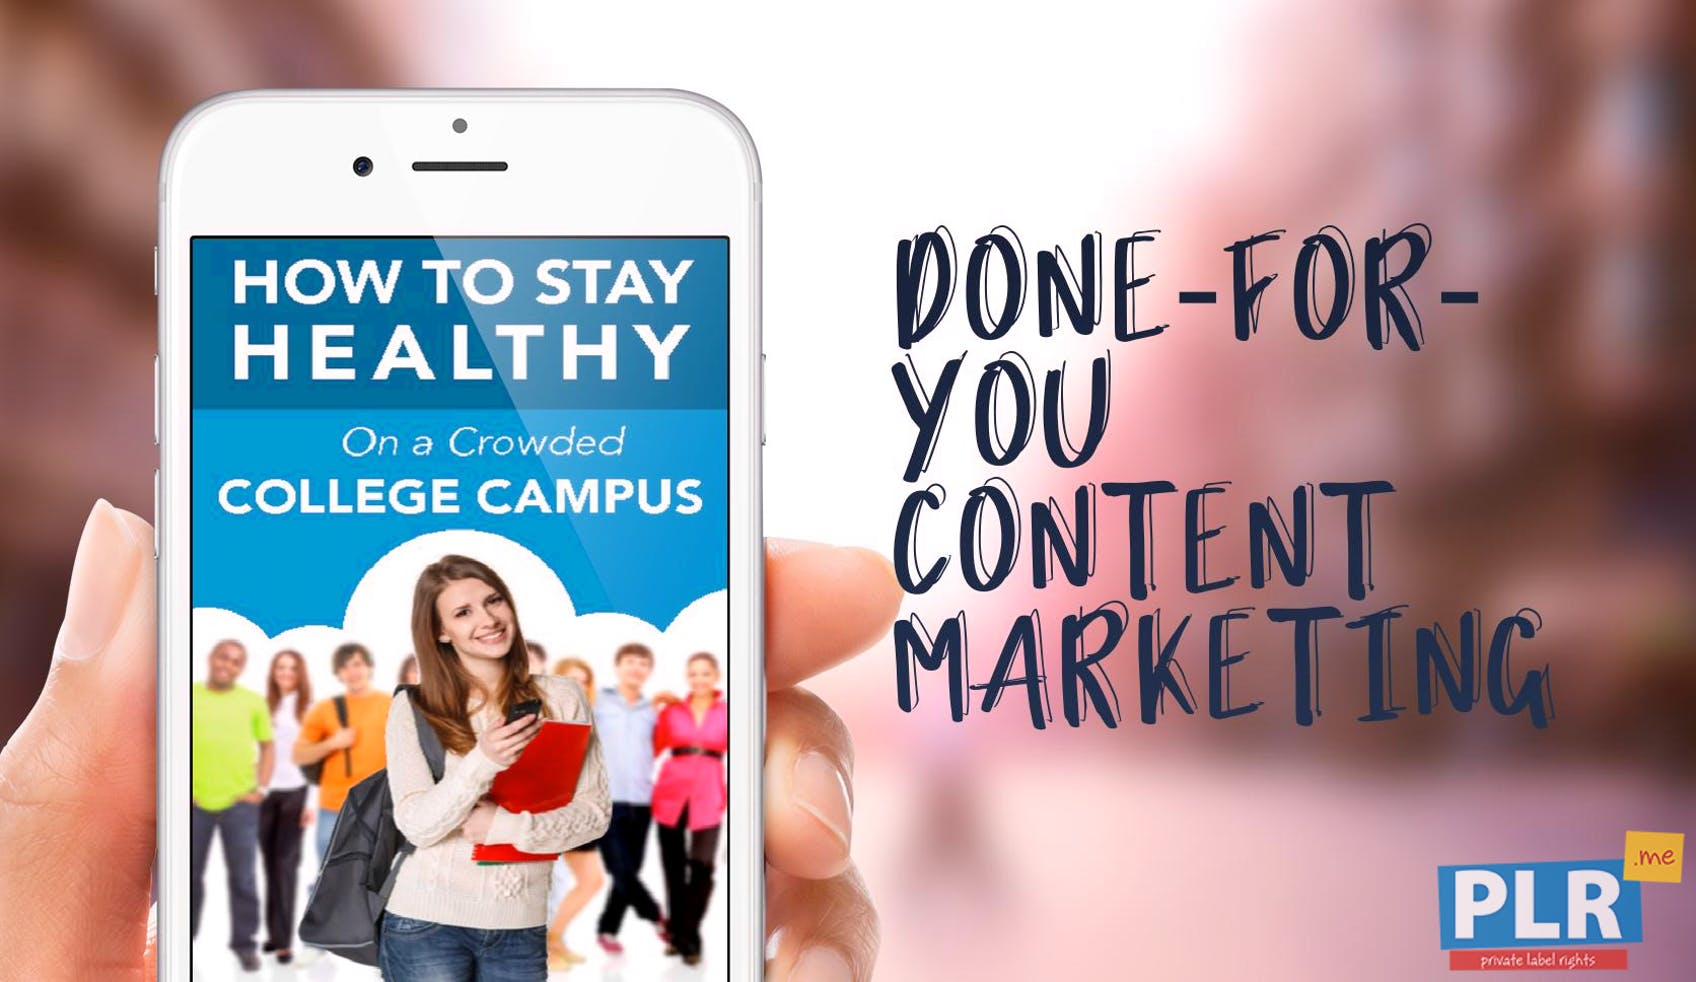 How To Stay Healthy On A Crowded College Campus